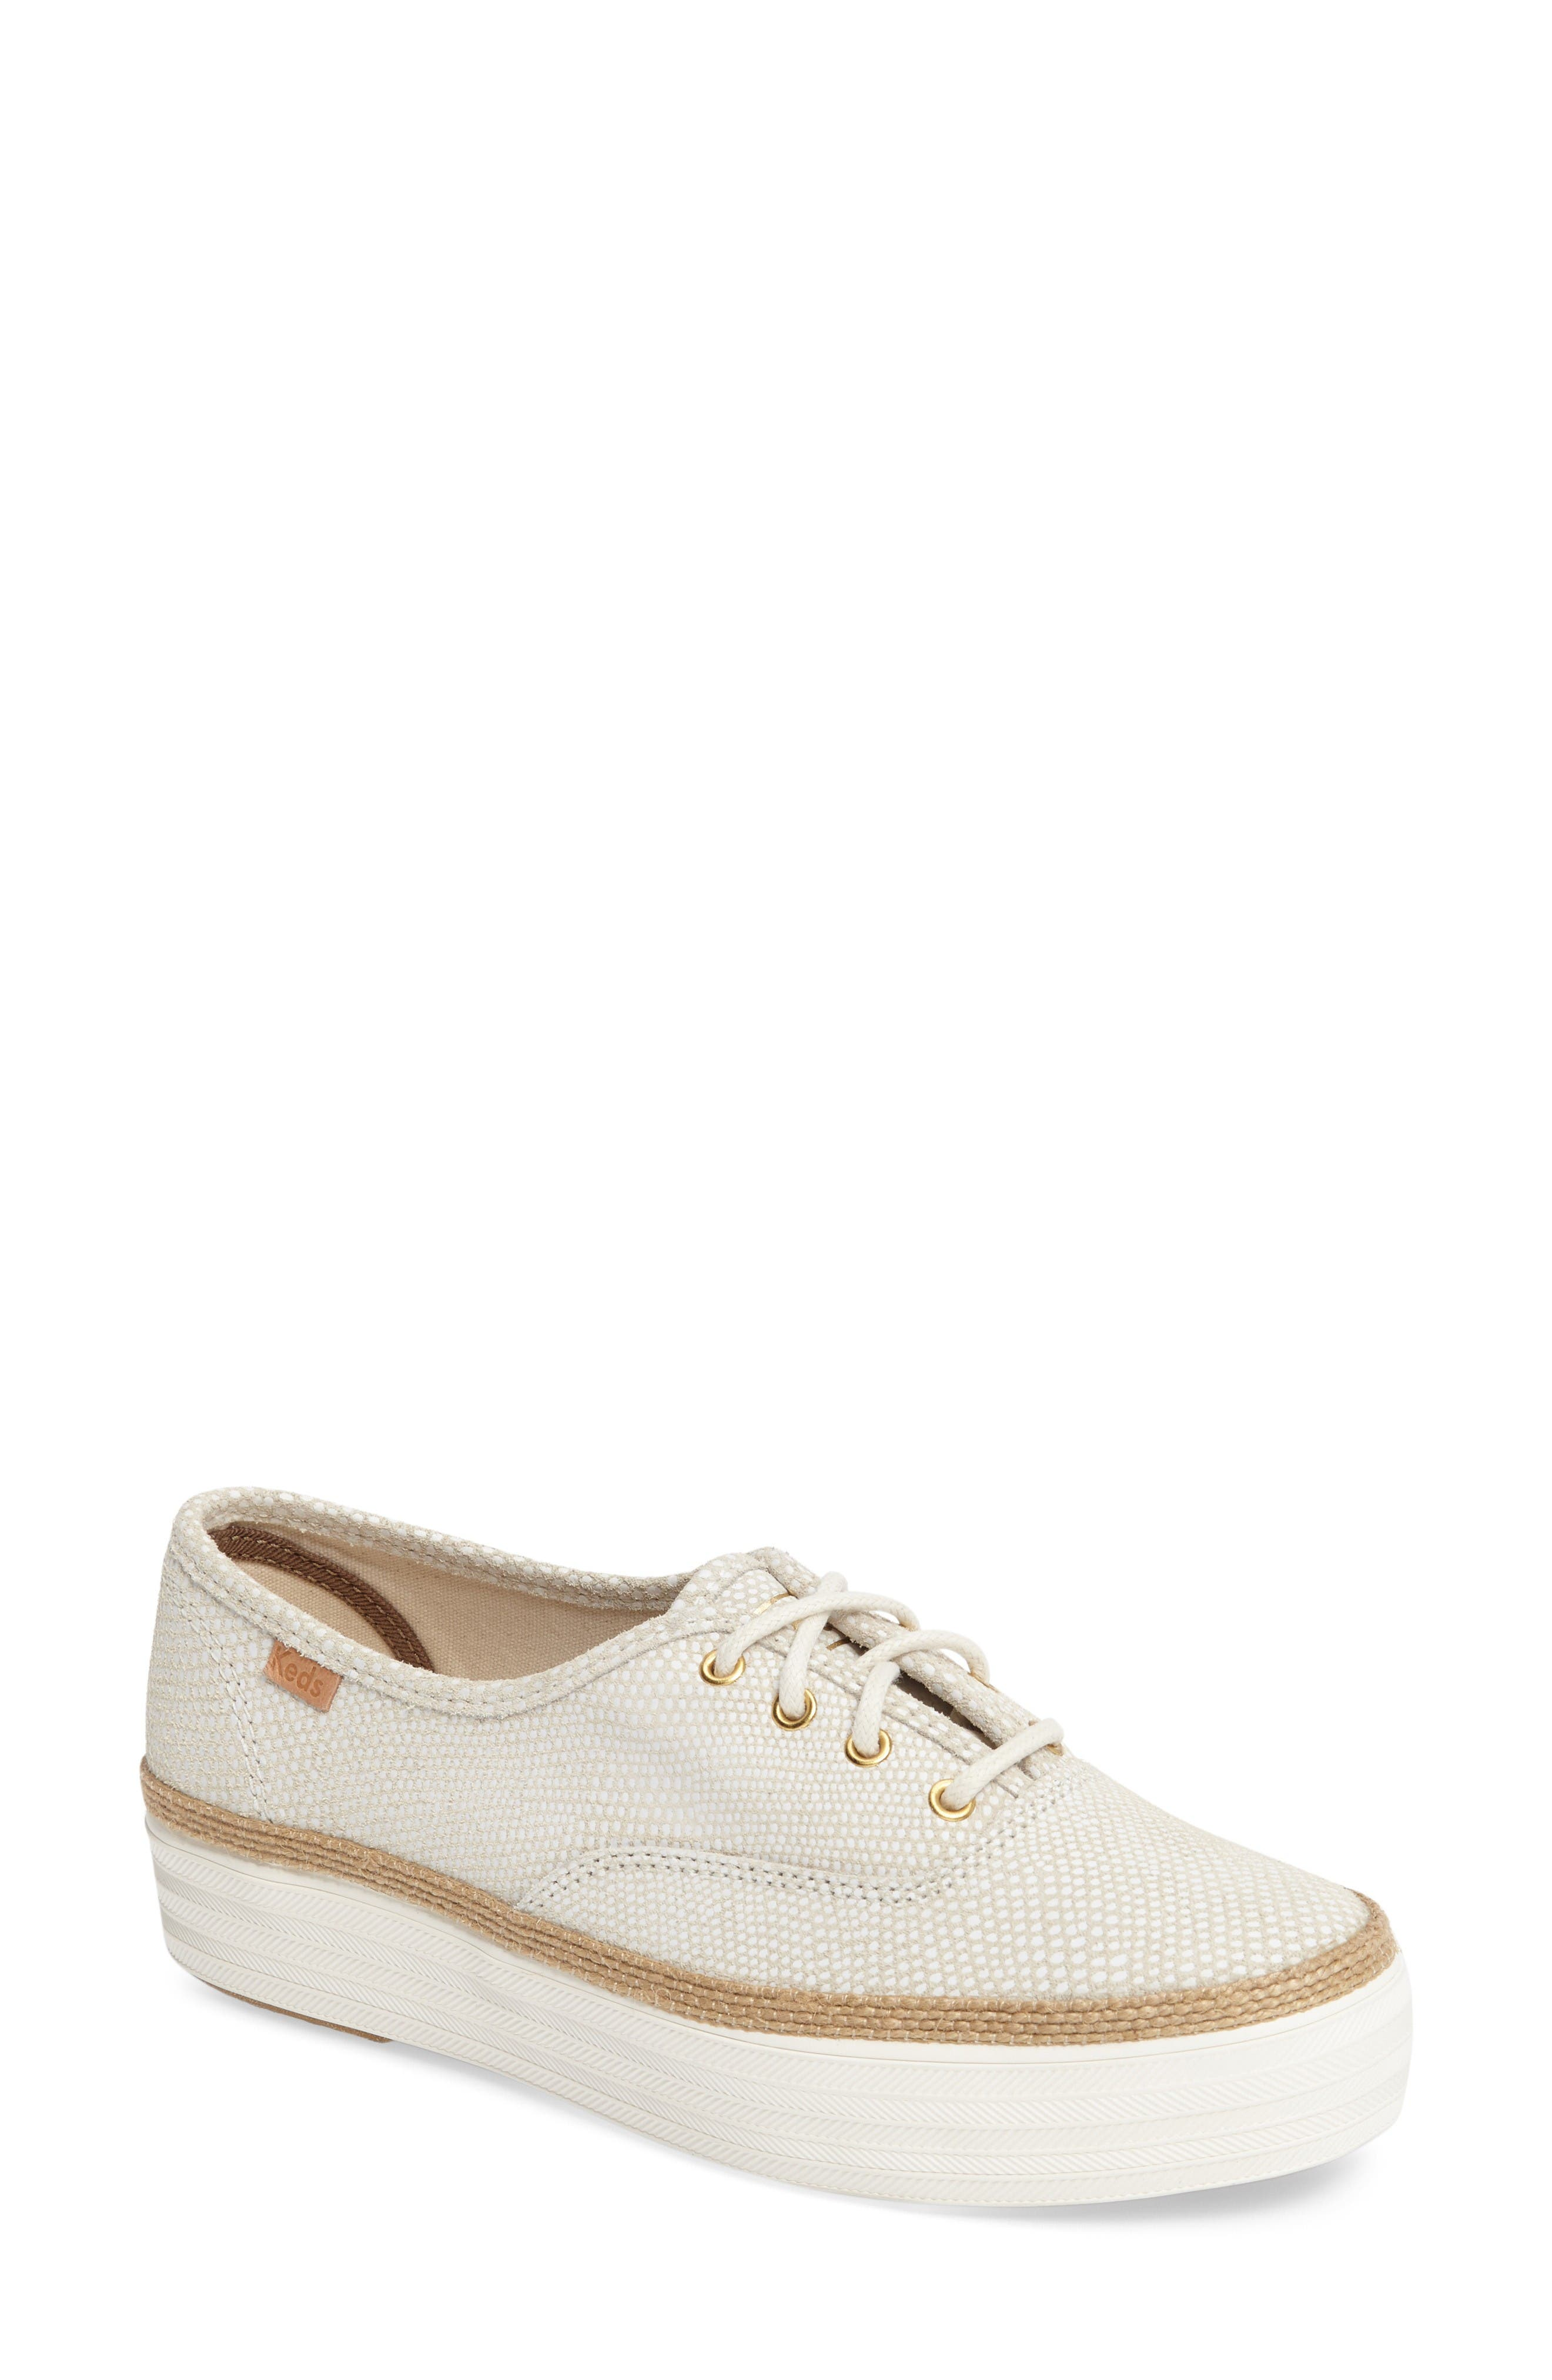 Triple Deck Platform Sneaker,                             Main thumbnail 1, color,                             Cream